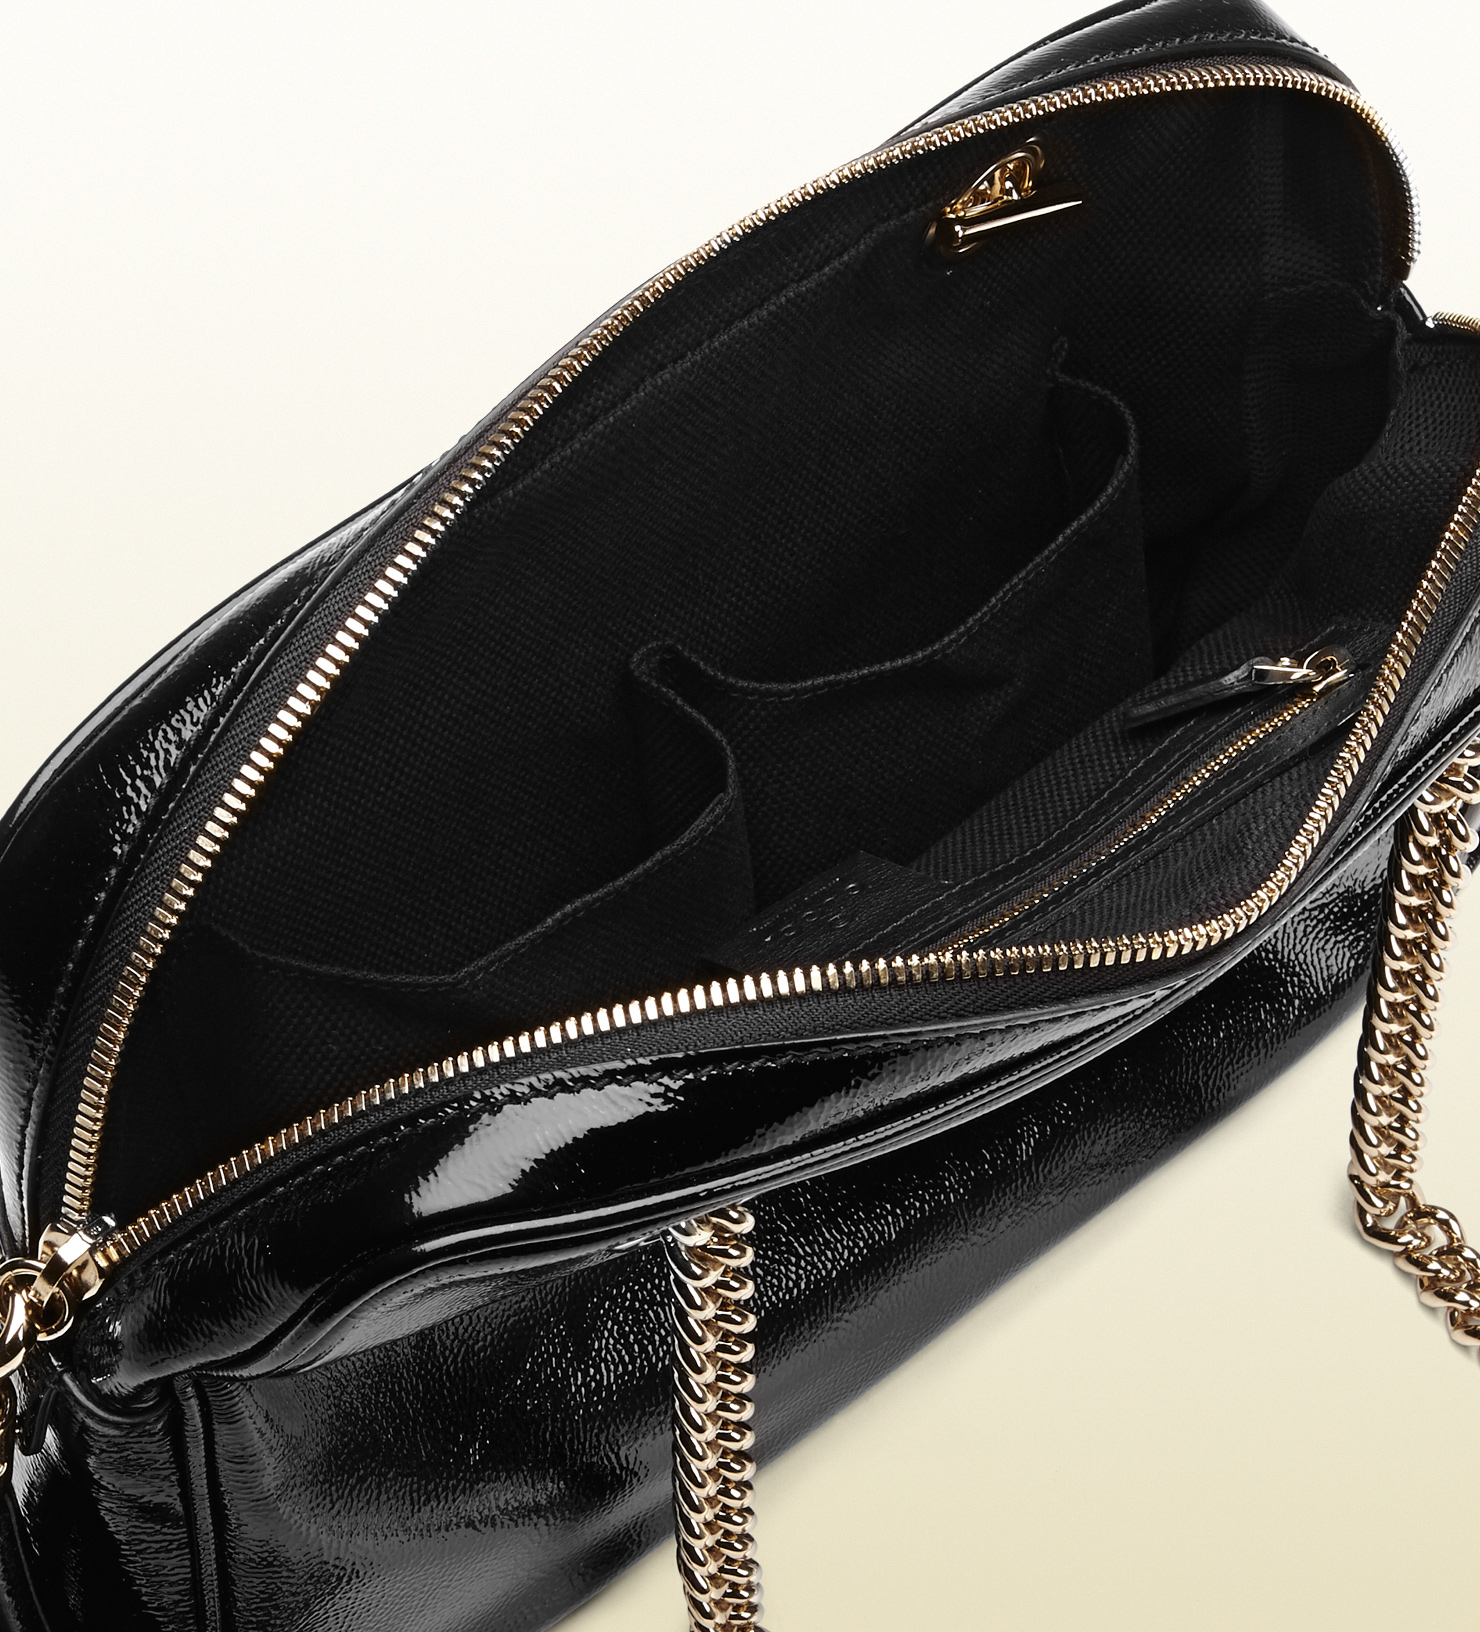 Gucci Soho Soft Patent Leather Chain Shoulder Bag in Black - Lyst 1283699cec466